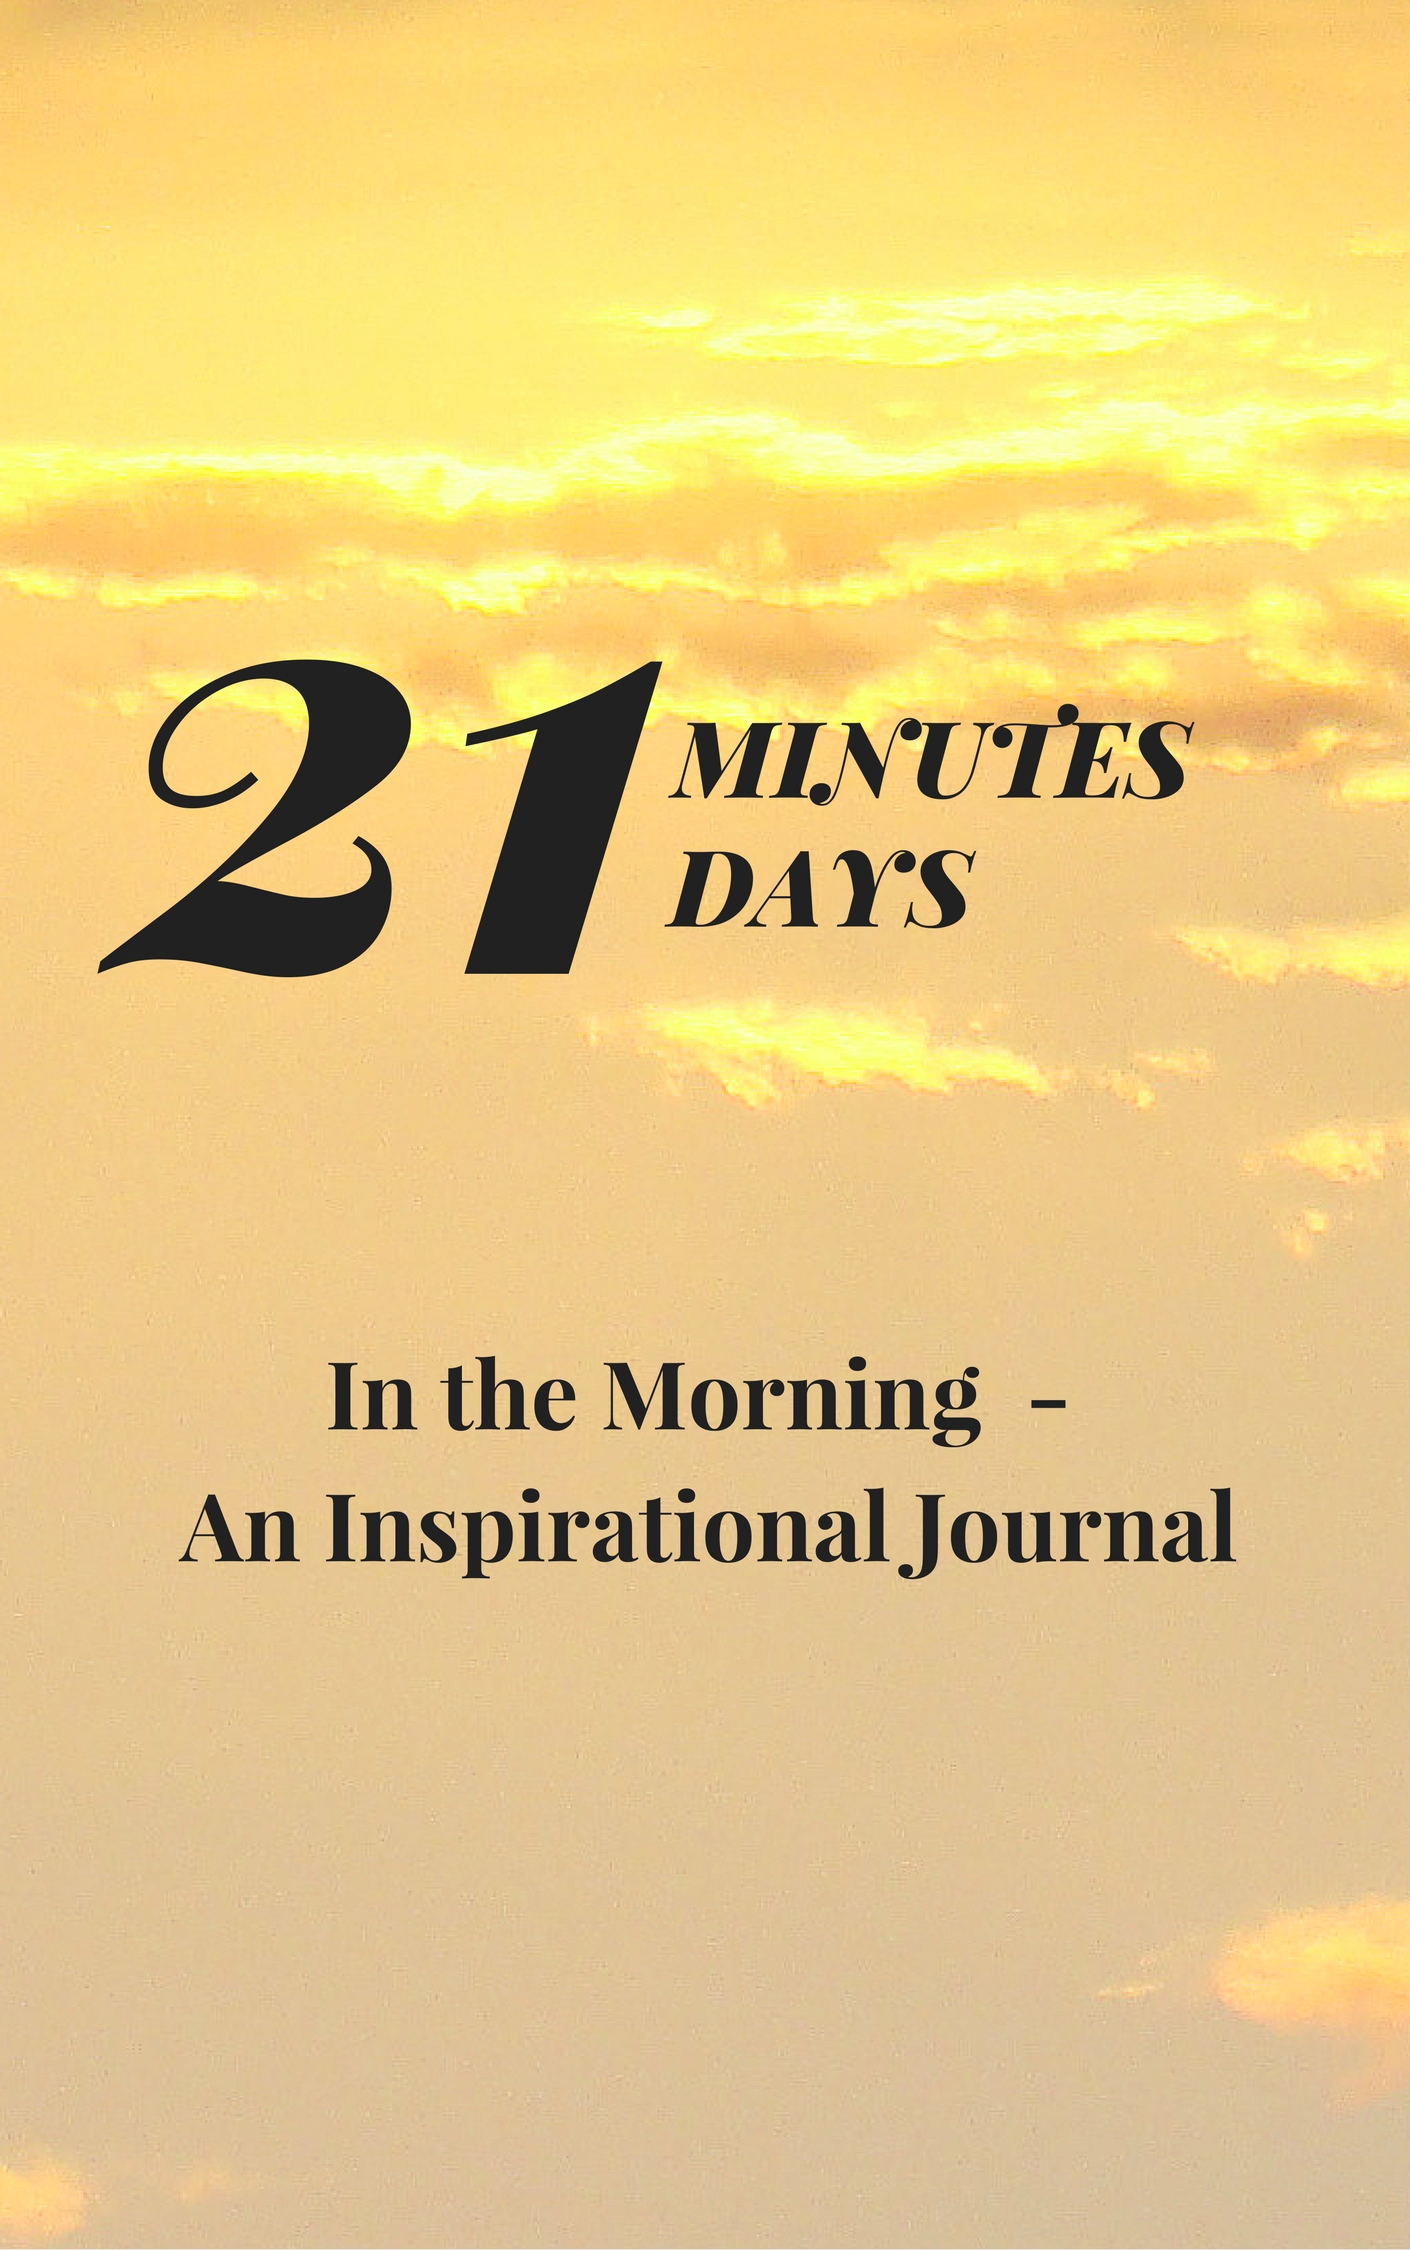 (Hard-copy) In the Morning - A 21 Day Inspirational Journey